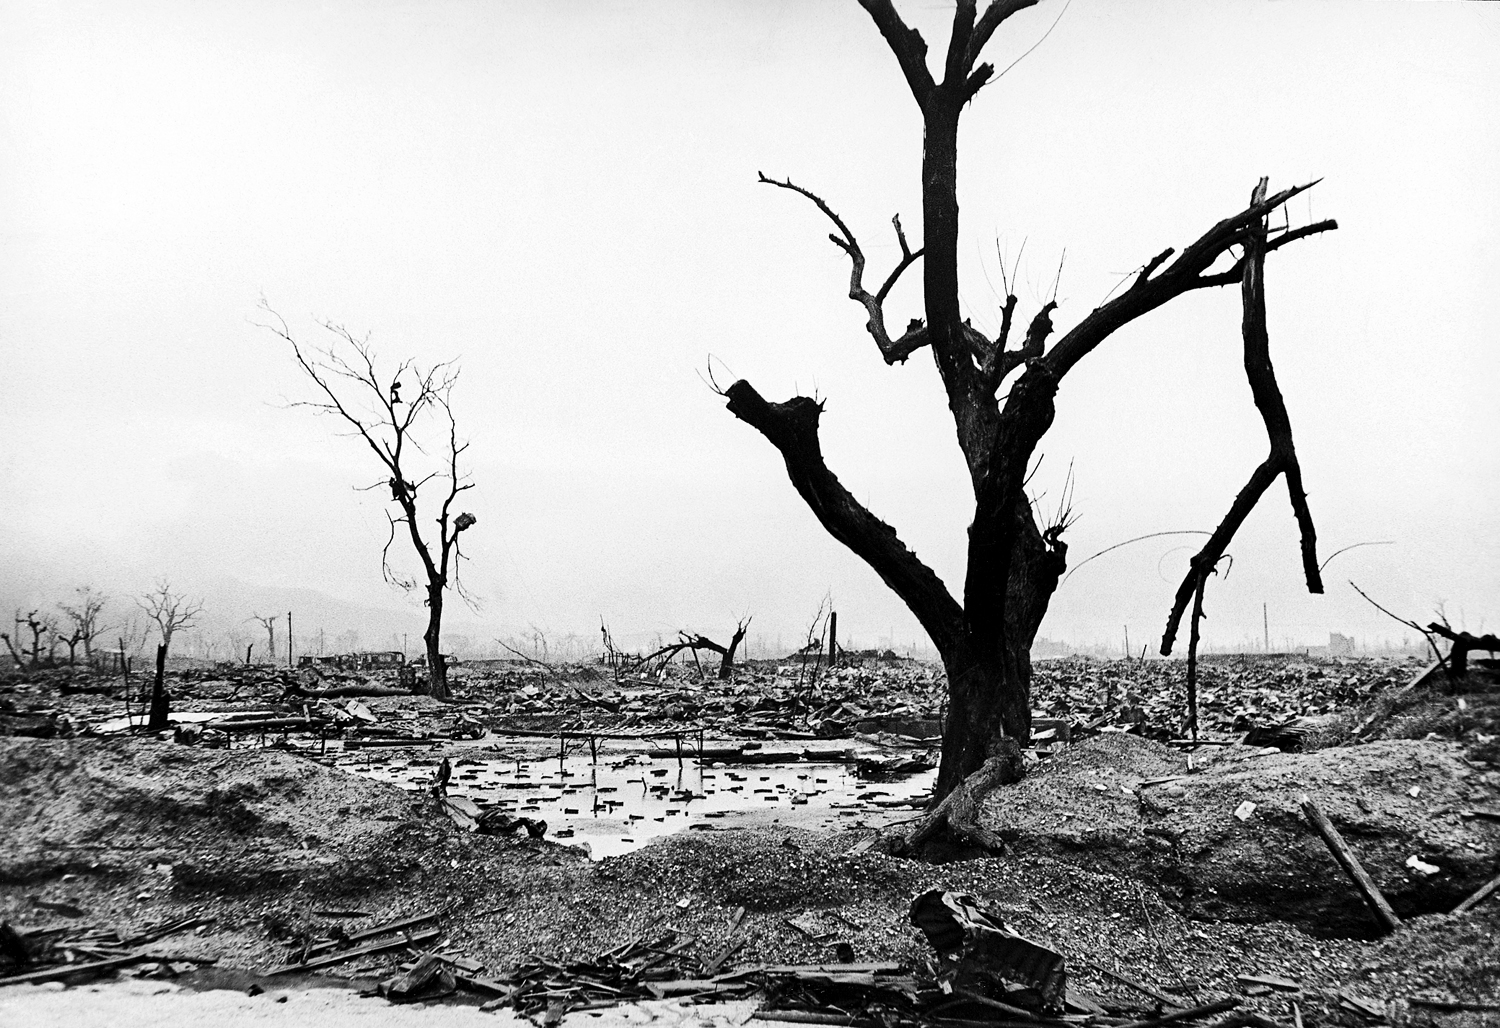 <b>Not published in LIFE.</b> Neighborhood reduced to rubble by atomic bomb blast, Hiroshima, 1945.